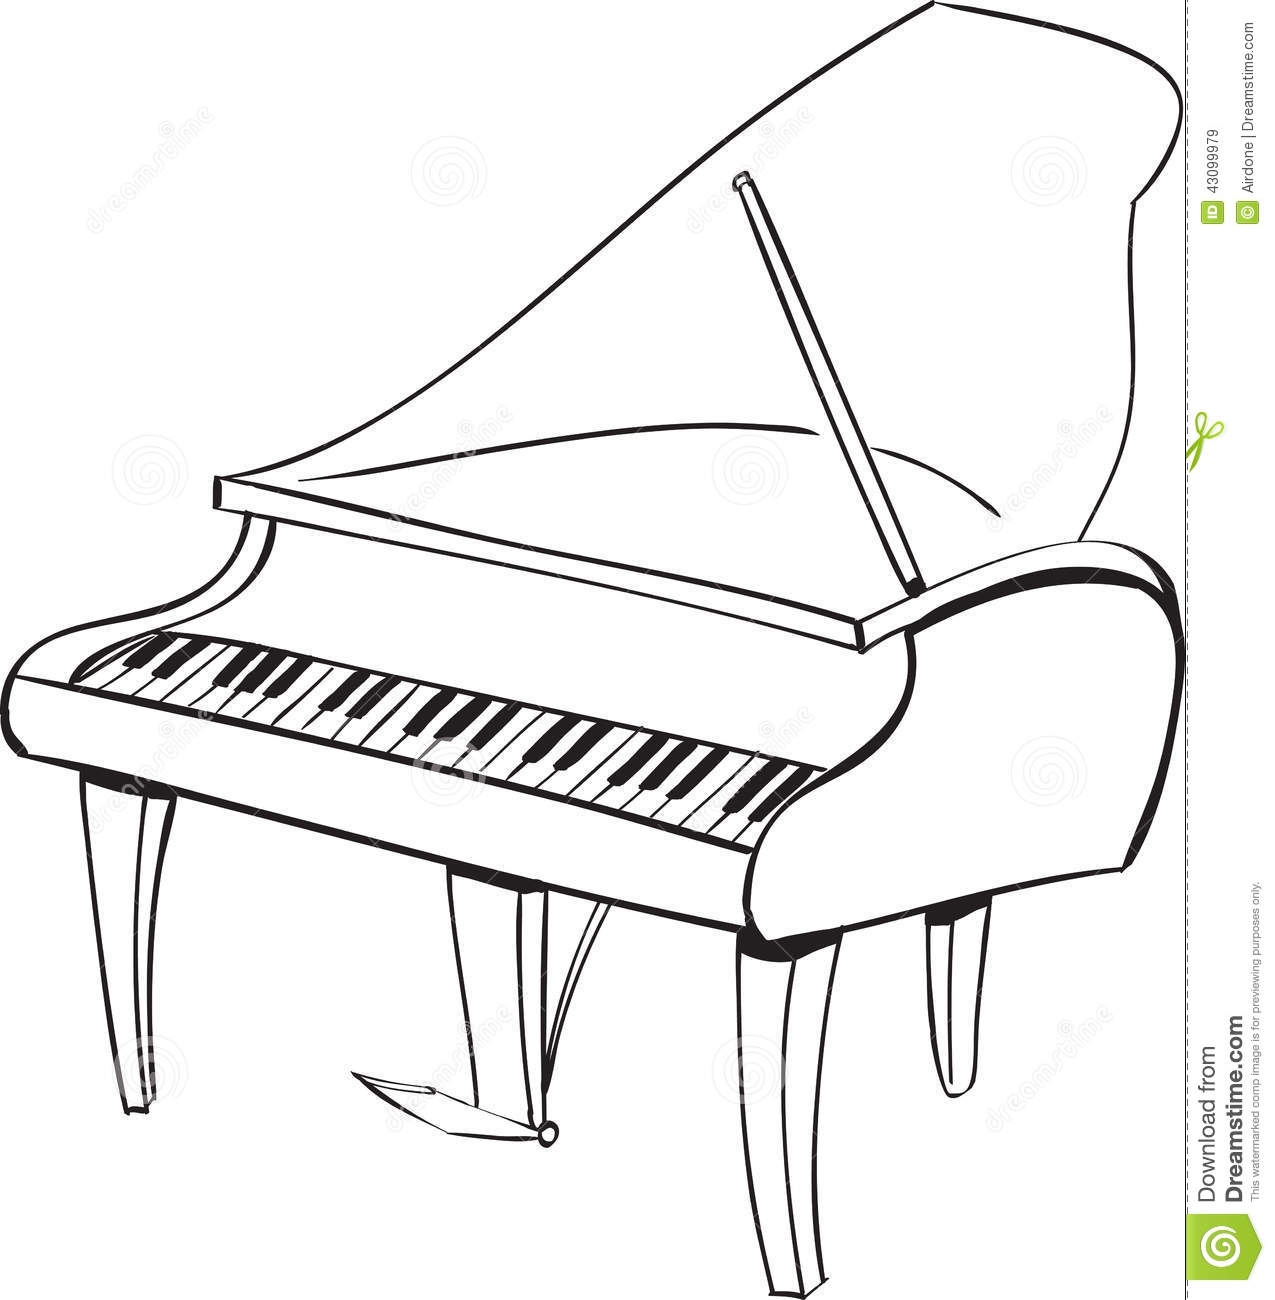 Piano clipart black and white. Station